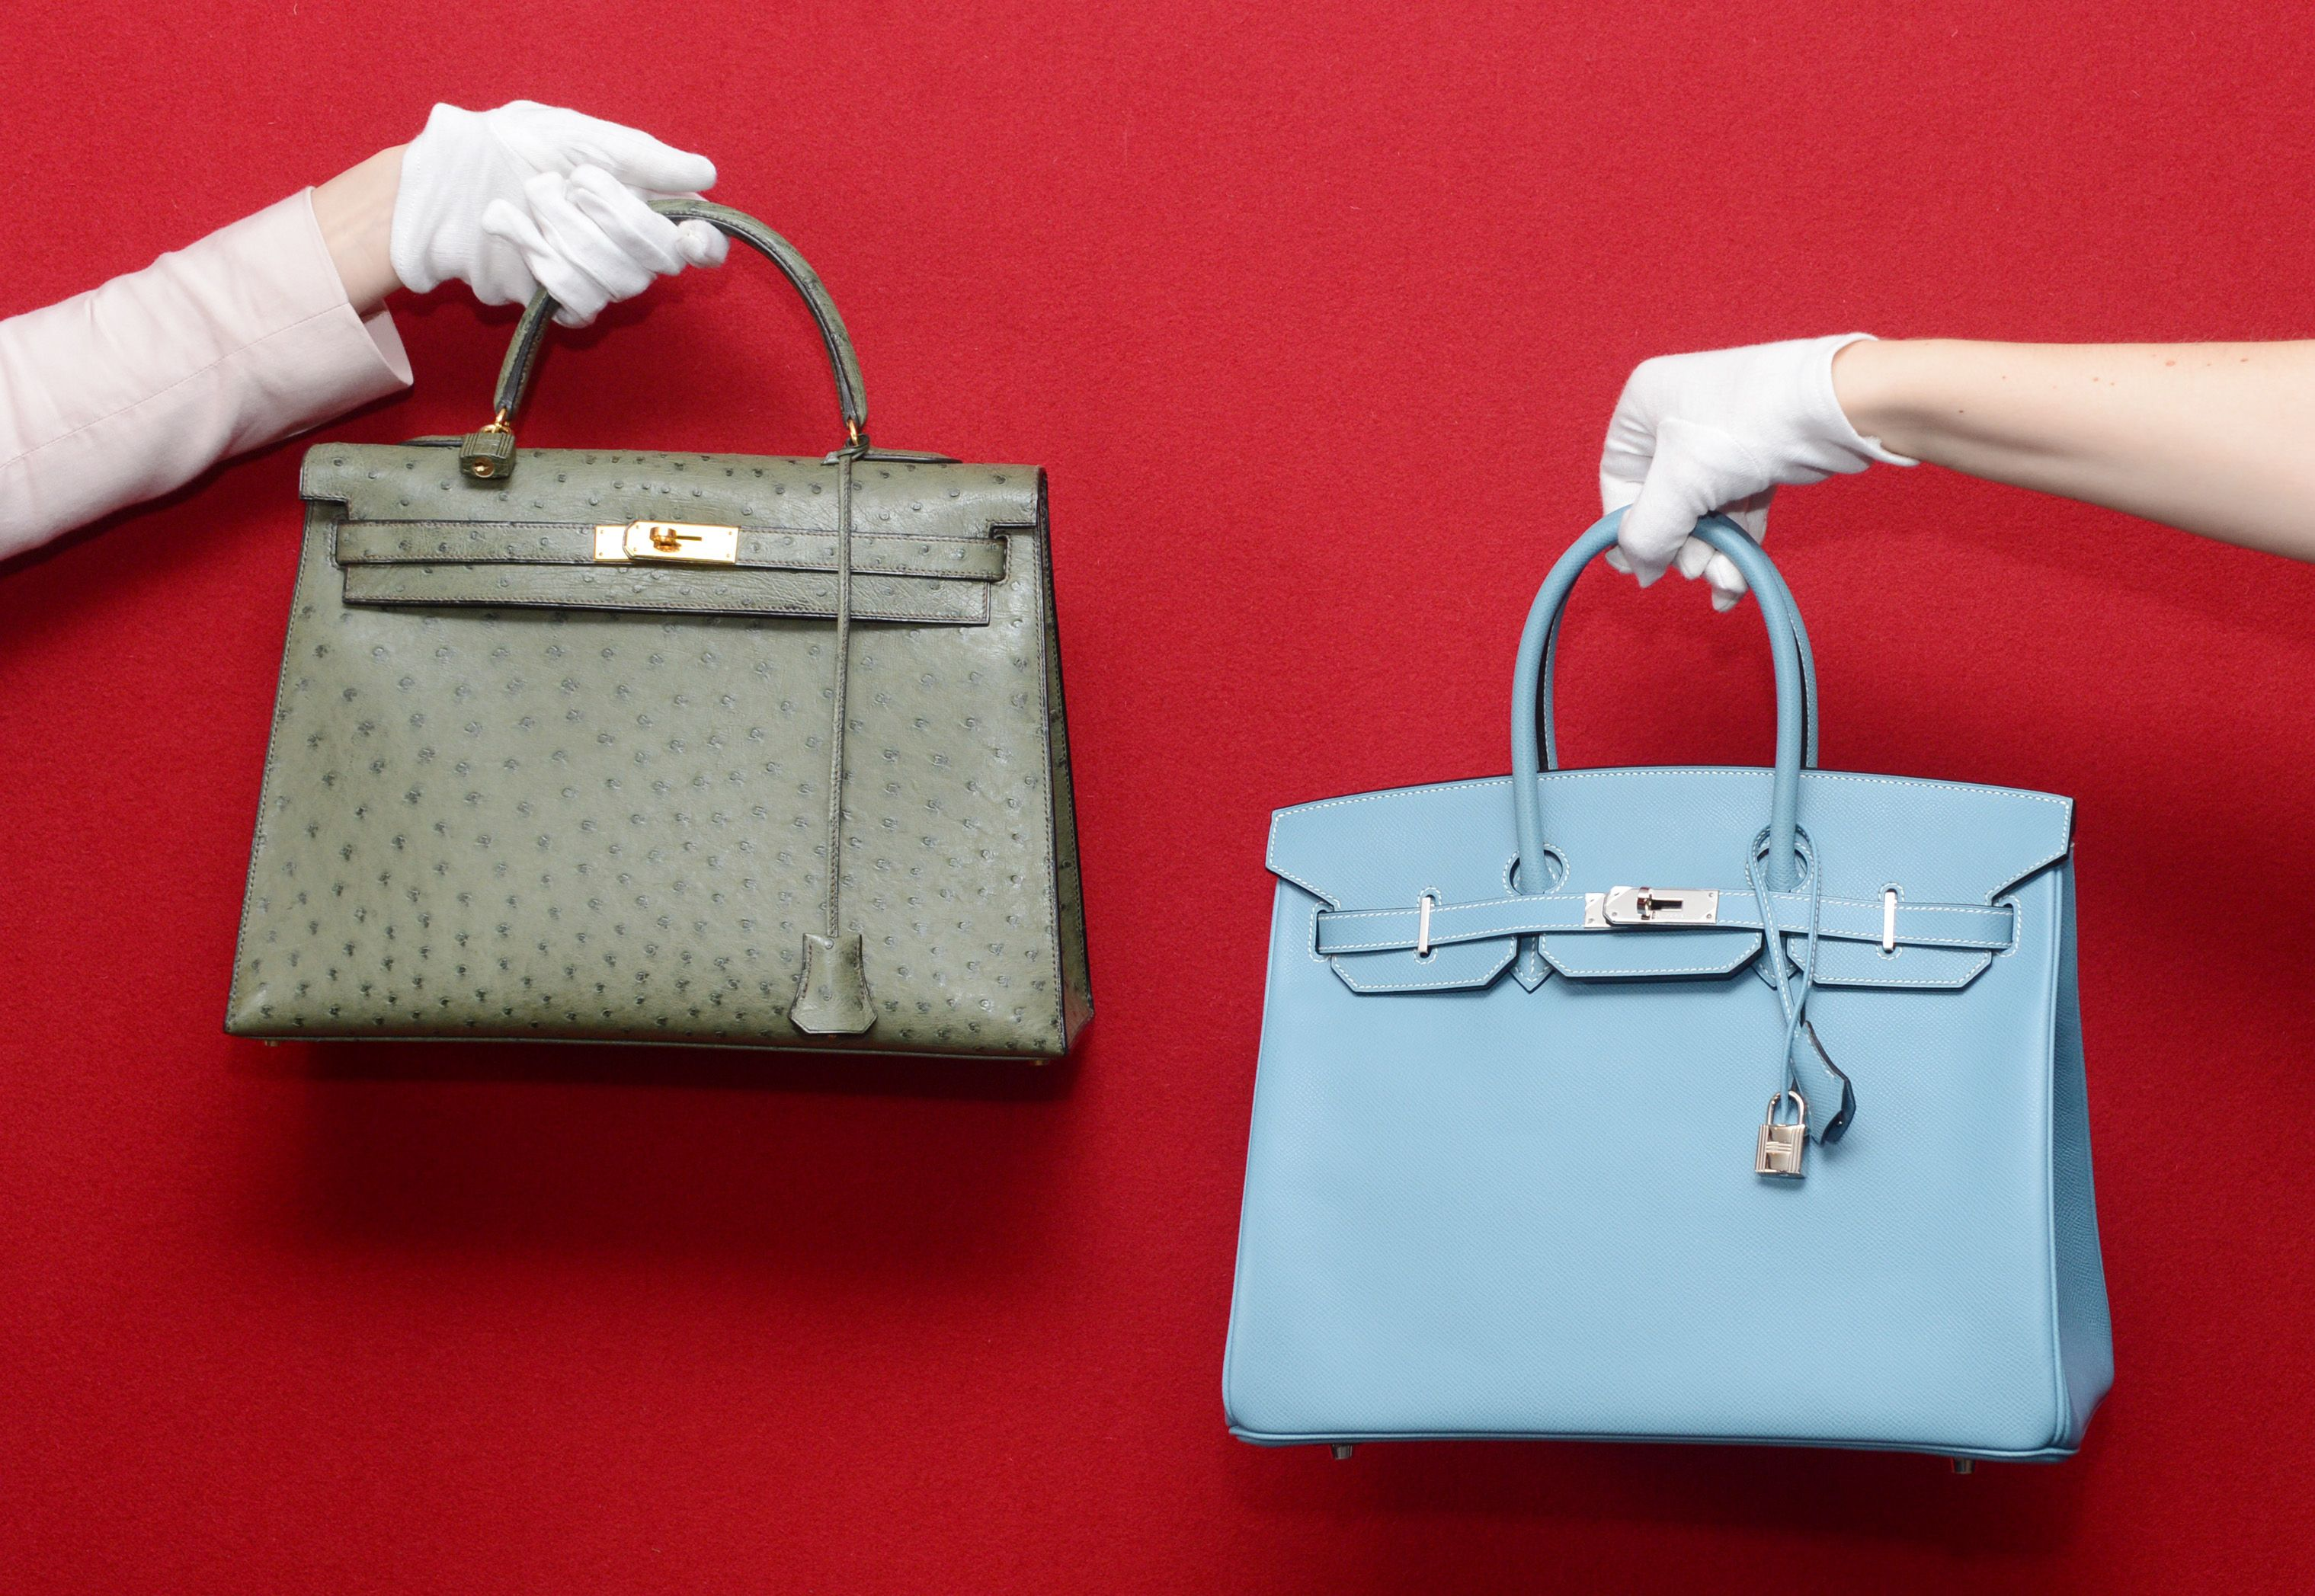 7874c28646a2 11 Things You Didn't Know About Hermes Birkins - Hermes Birkin ...